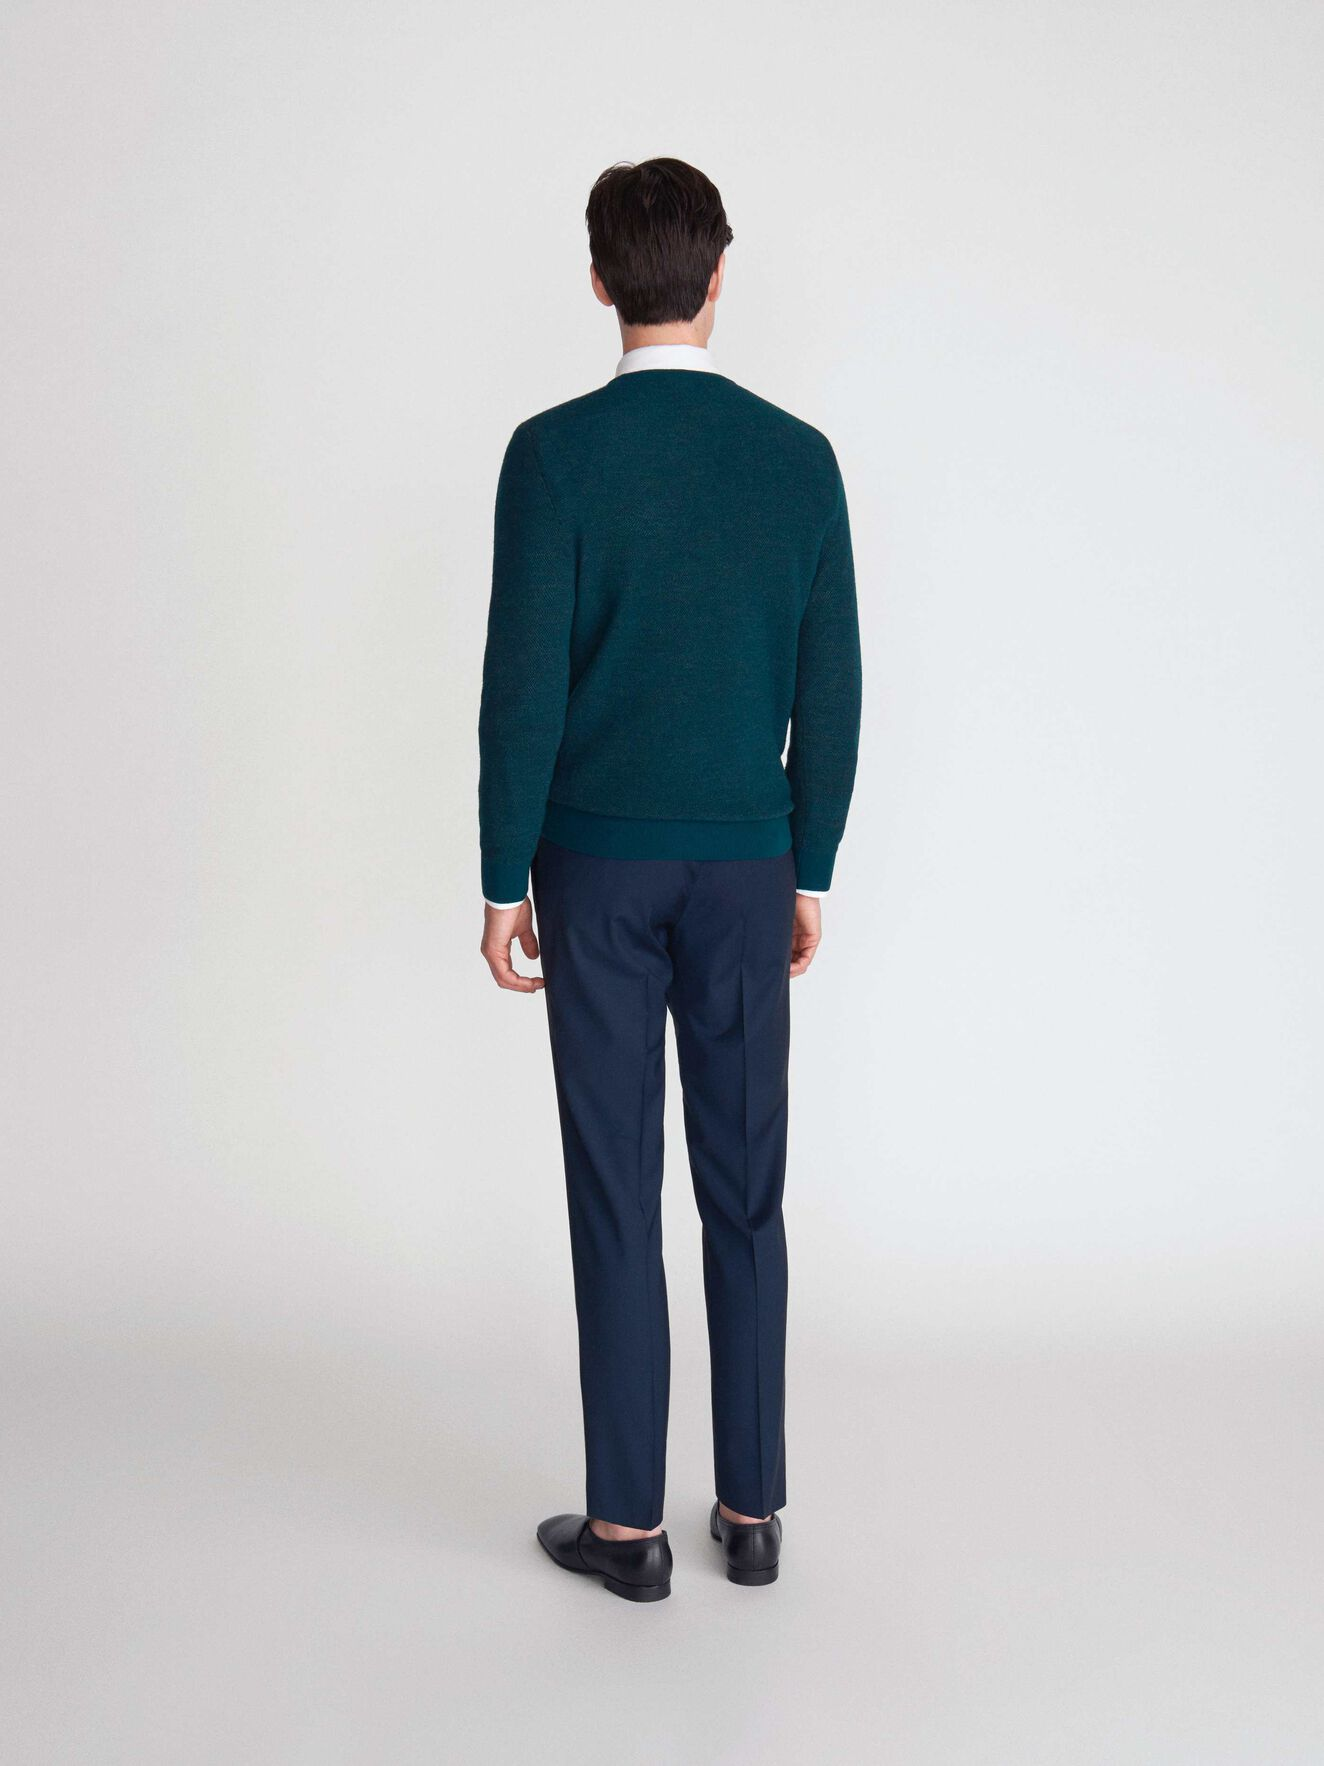 Nimpy Pullover in Pine Green from Tiger of Sweden